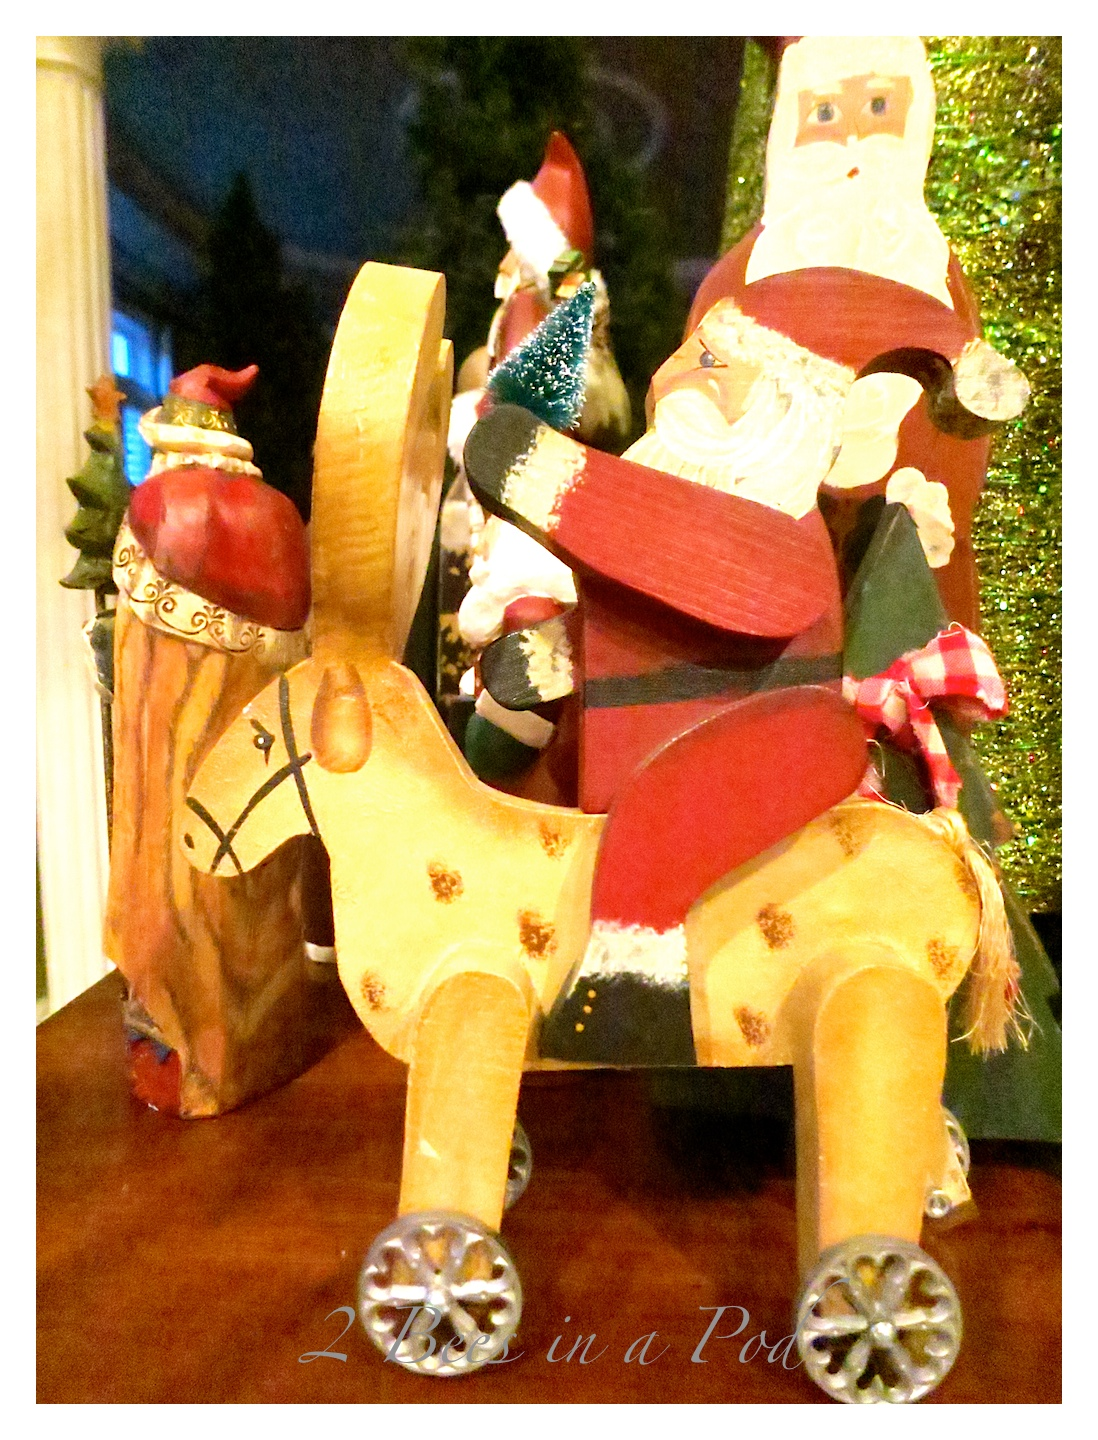 Handmade and painted vintage Santa Claus